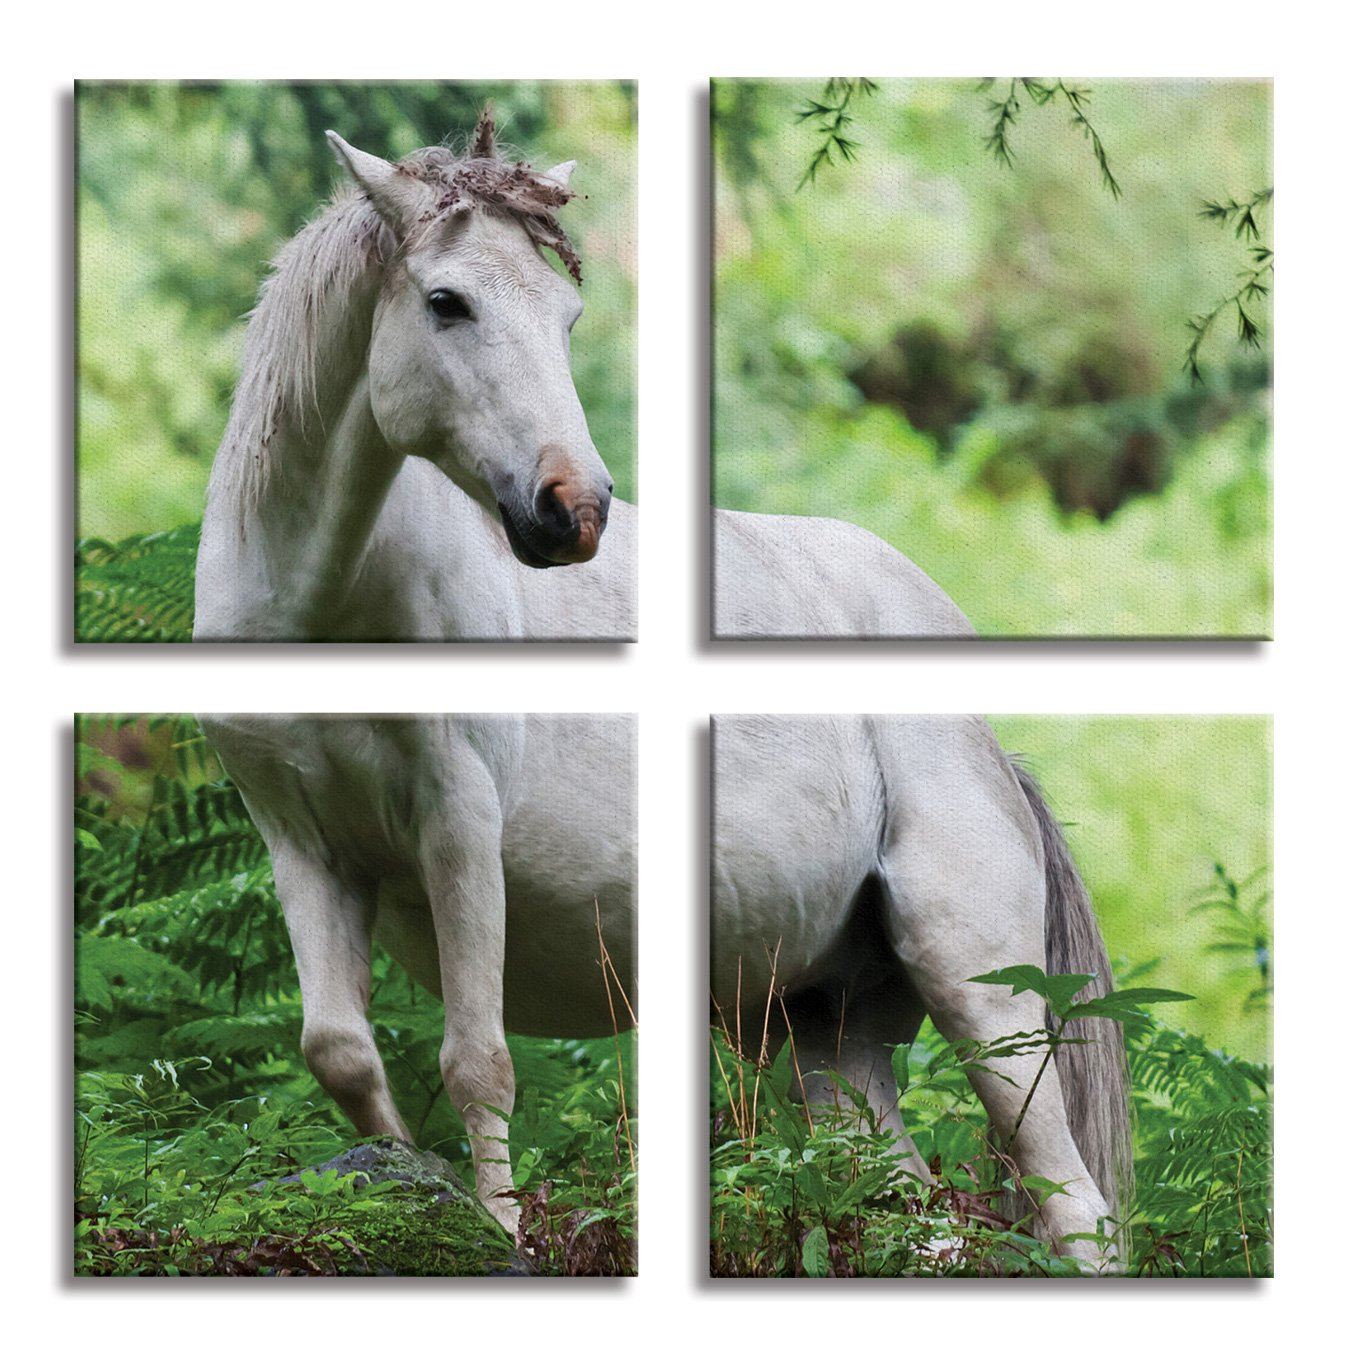 JP London 4 Panels 14in 4 Huge Gallery Wrap Canvas Wall Art Wild Arabian Night Horse Free Forest At Overall 28in QDCNV2280